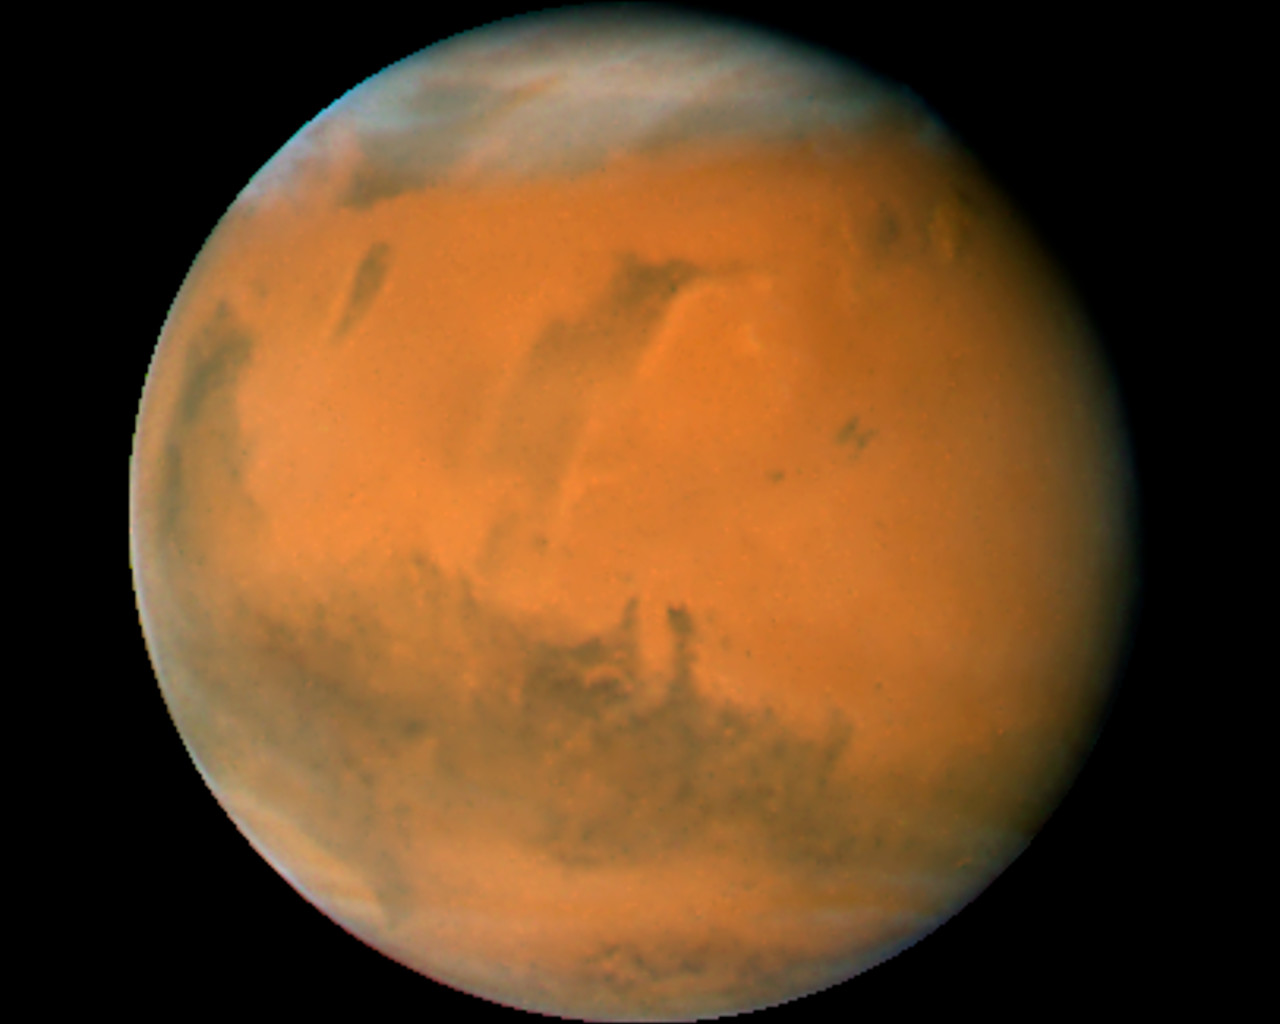 hubble images of mars - photo #17